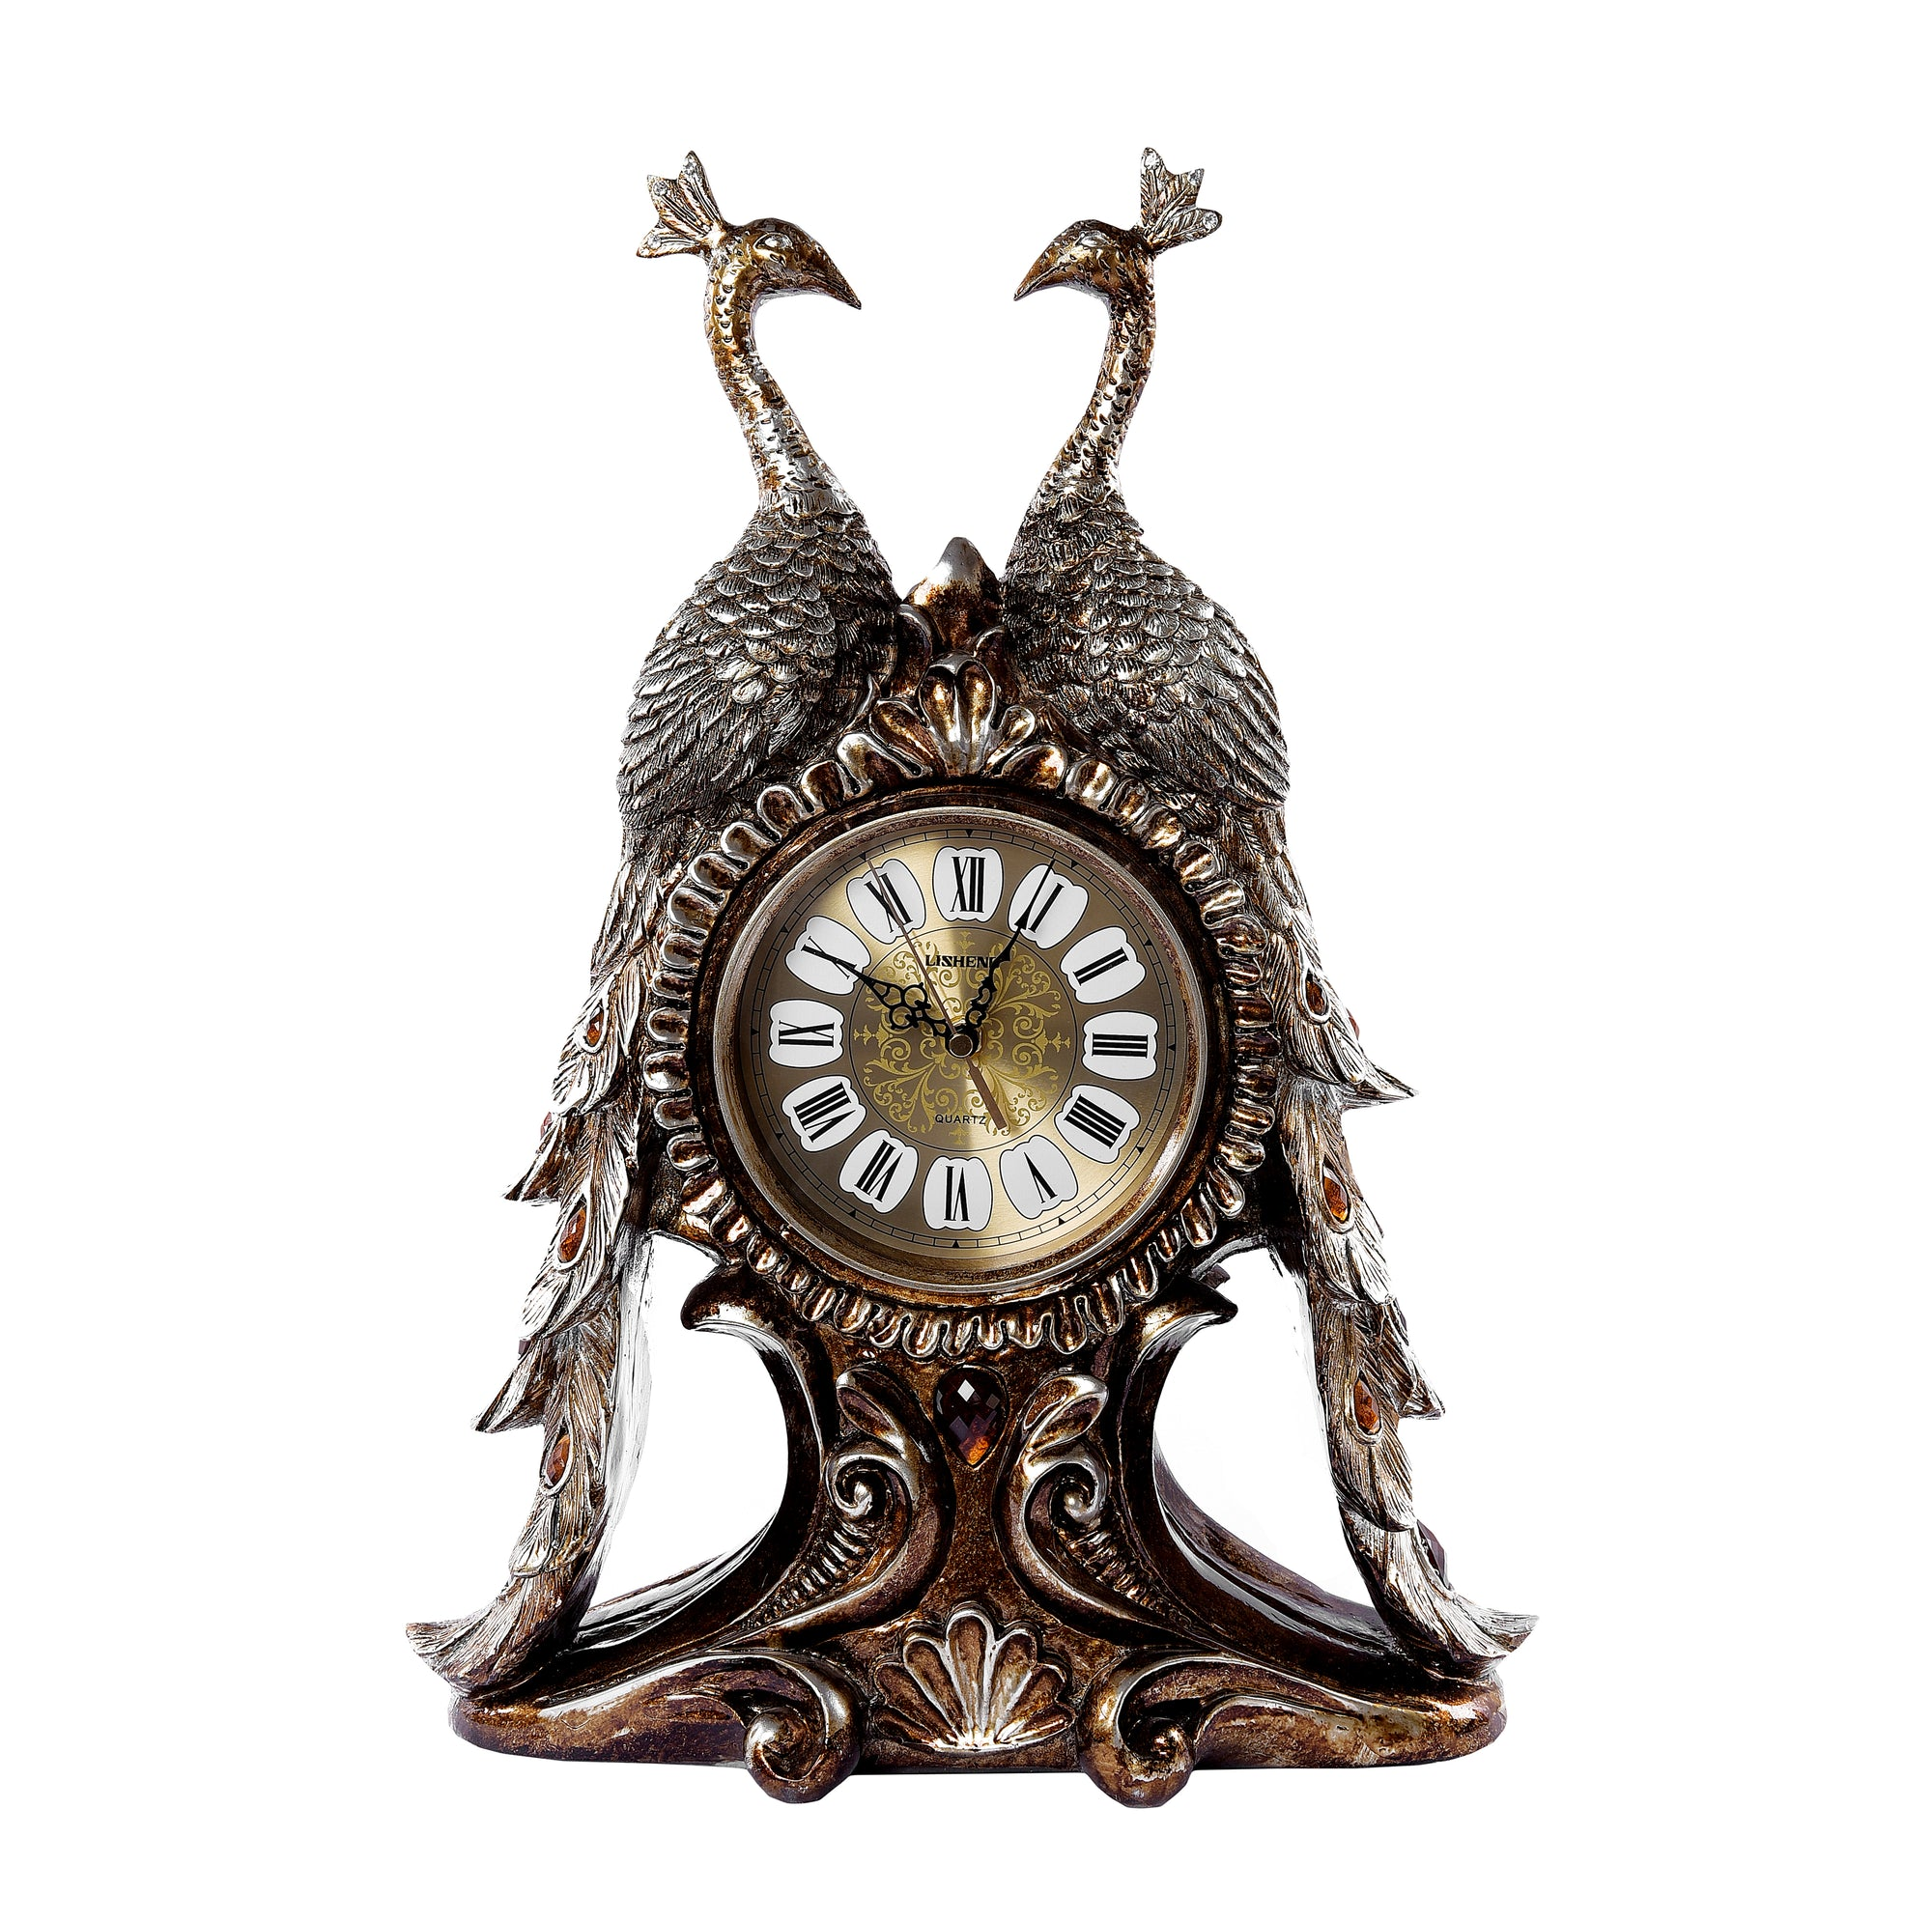 PEACOCK DESIGN PERIOD CHINOISERIE STYLE CLOCK